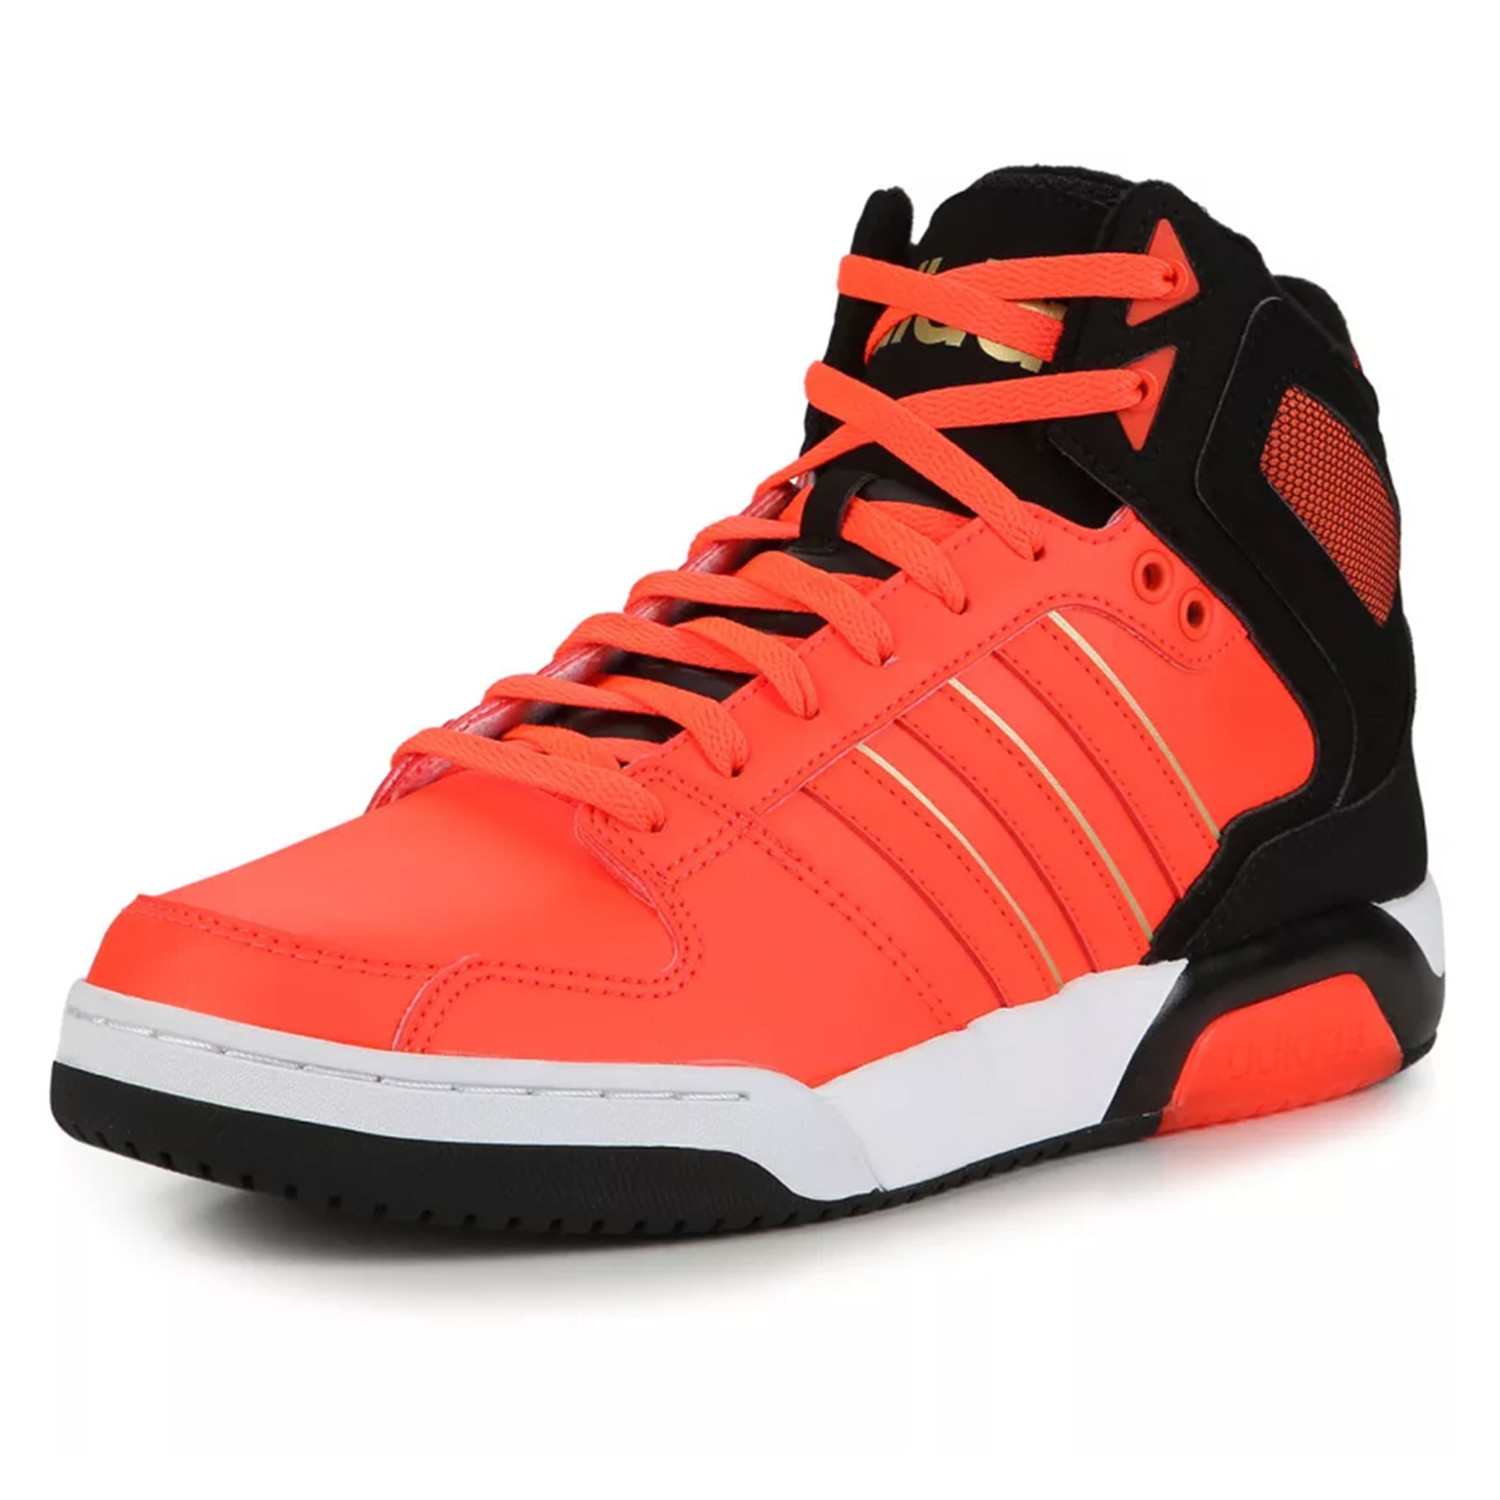 Mid Pas Chaussure Baskets Rouge Cher Homme Montantes Adidas Bb9tis 0kOnwZN8XP